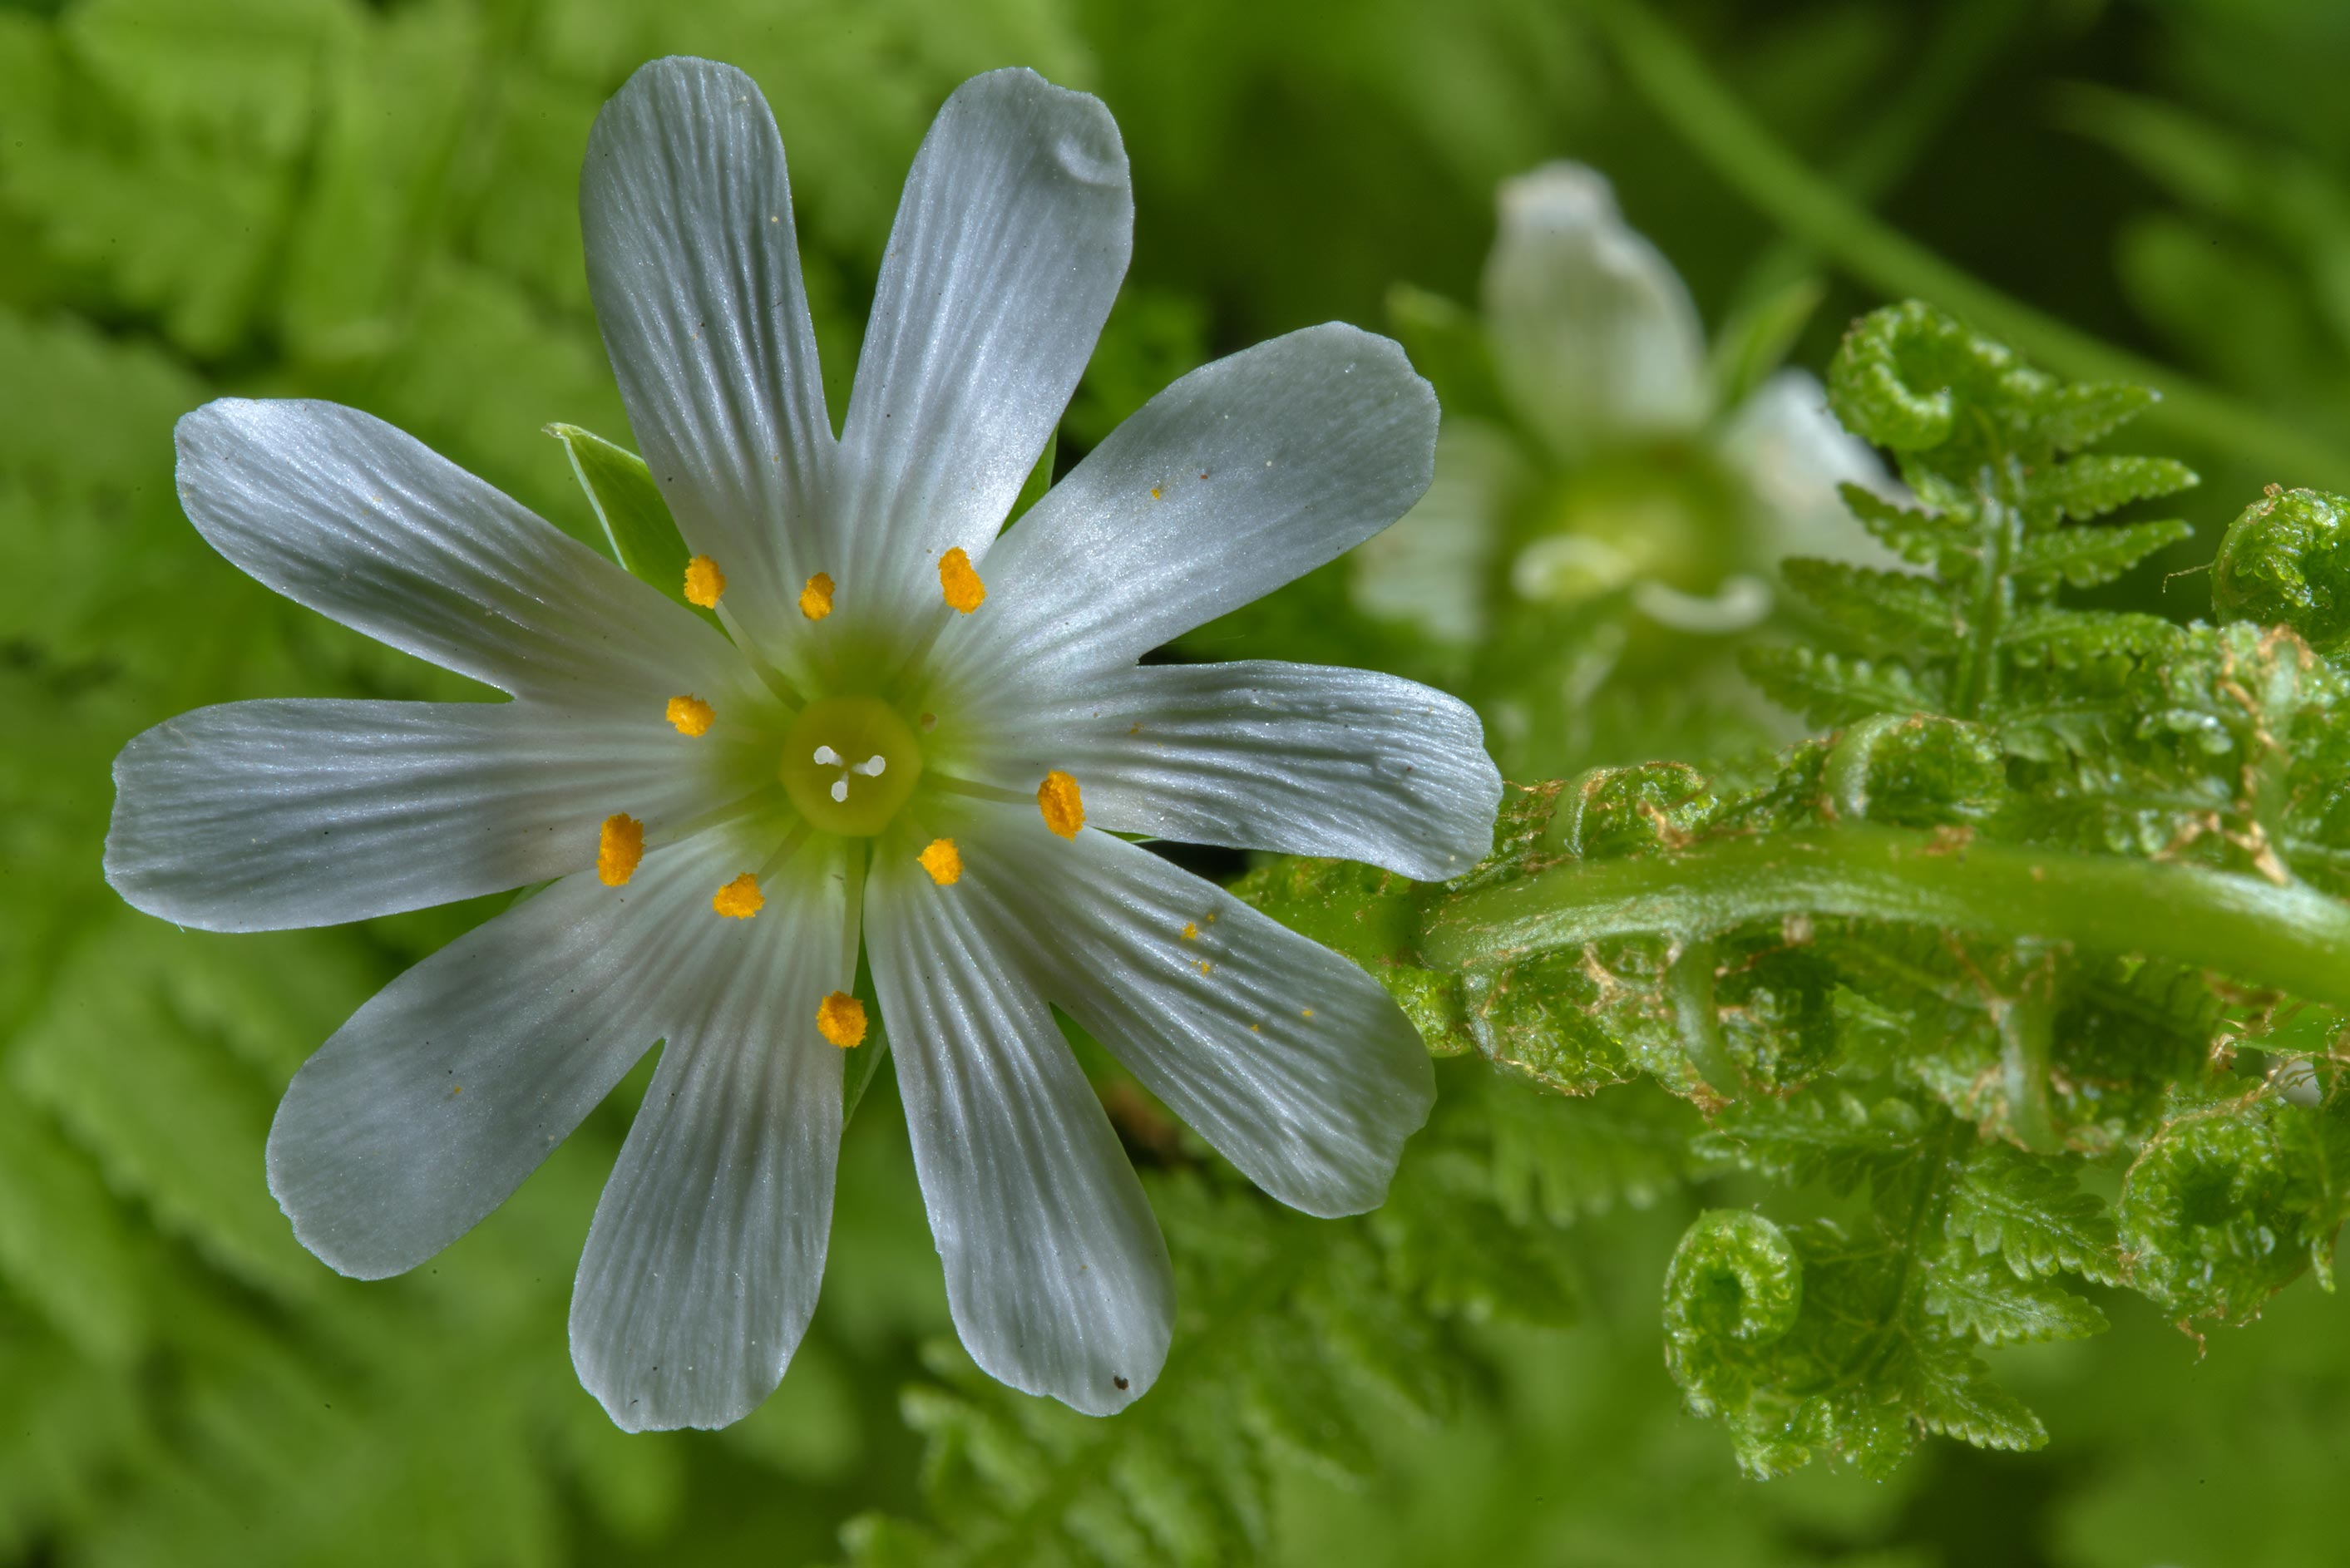 Stellaria flower with ferns in Udelny Park. St.Petersburg, Russia